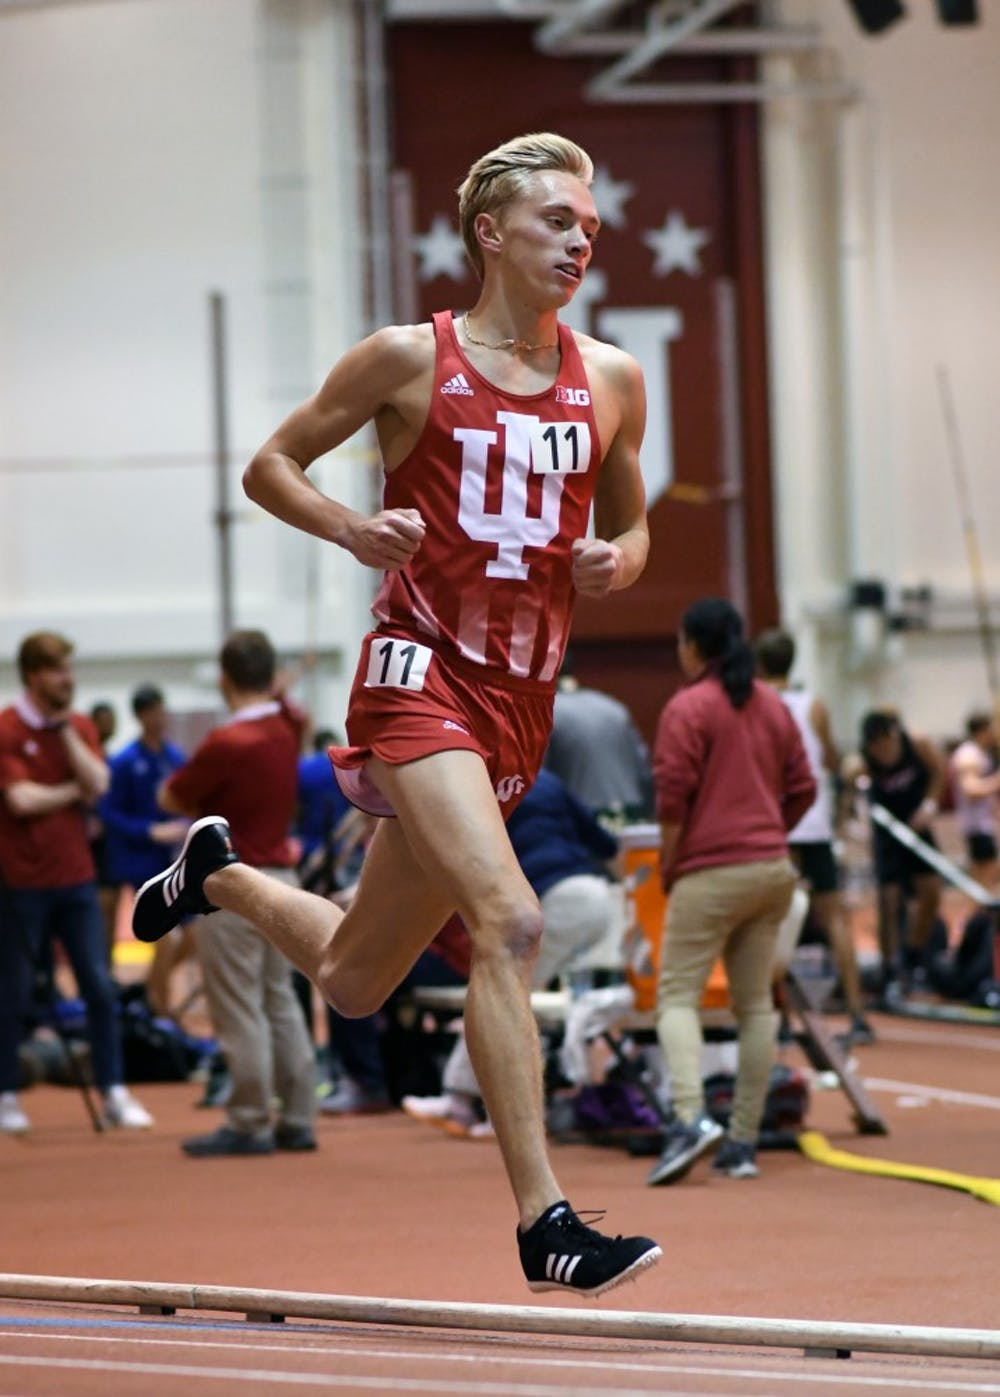 <p>Redshirt freshman Ben Veatch races in the 3000 meters at the Gladstein Invitational. Veatch finished 16th in the men's 5,000-meter run at the NCAA Track and Field Outdoor Championships on Friday.&nbsp;</p>